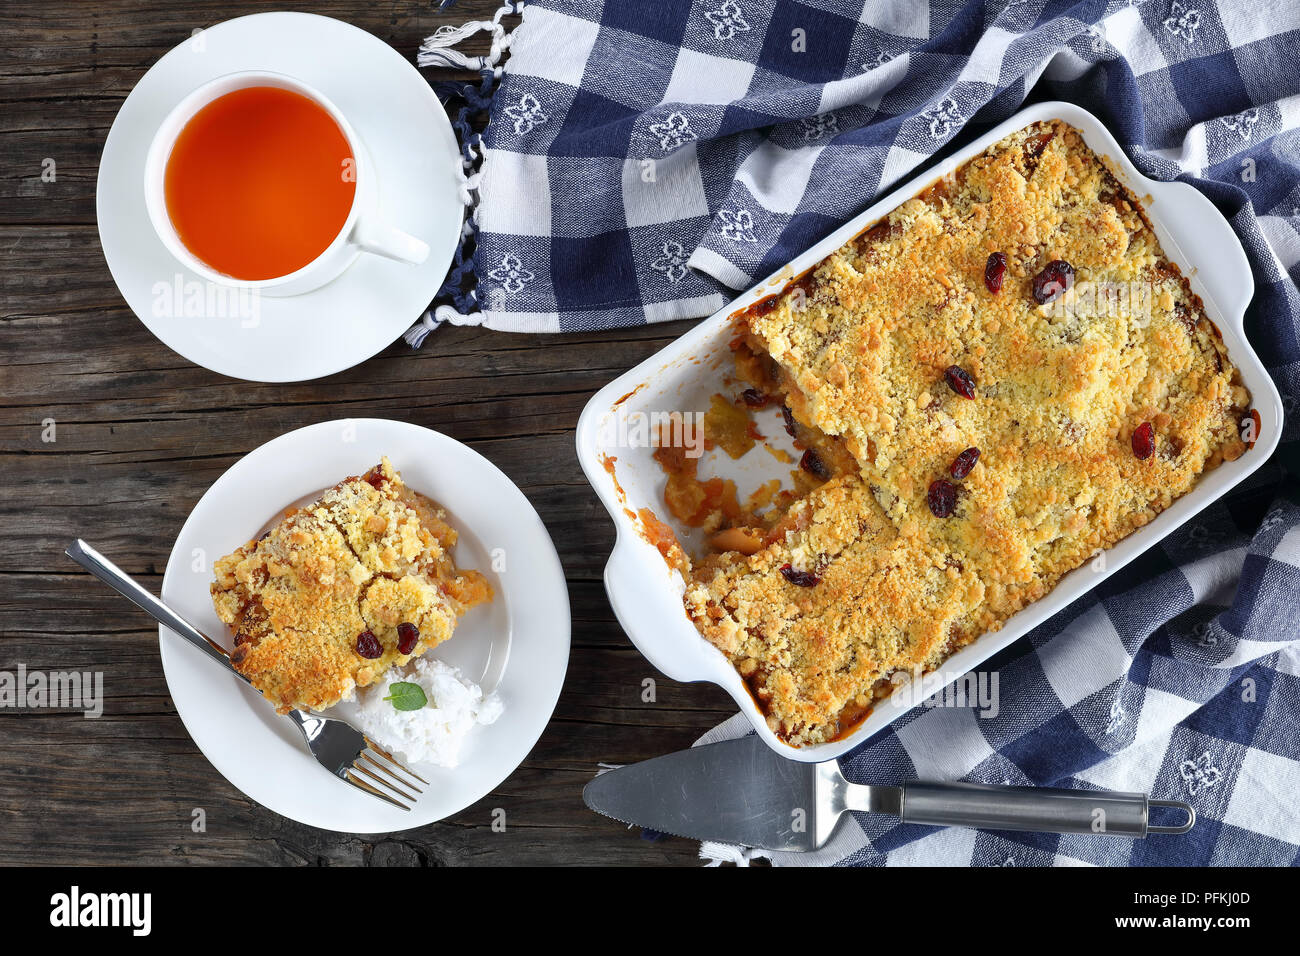 tasty apple crumble or apple crisp in baking dish and a portion on plate with a scoop of coconut milk ice cream. cup of tea at background, view from a - Stock Image